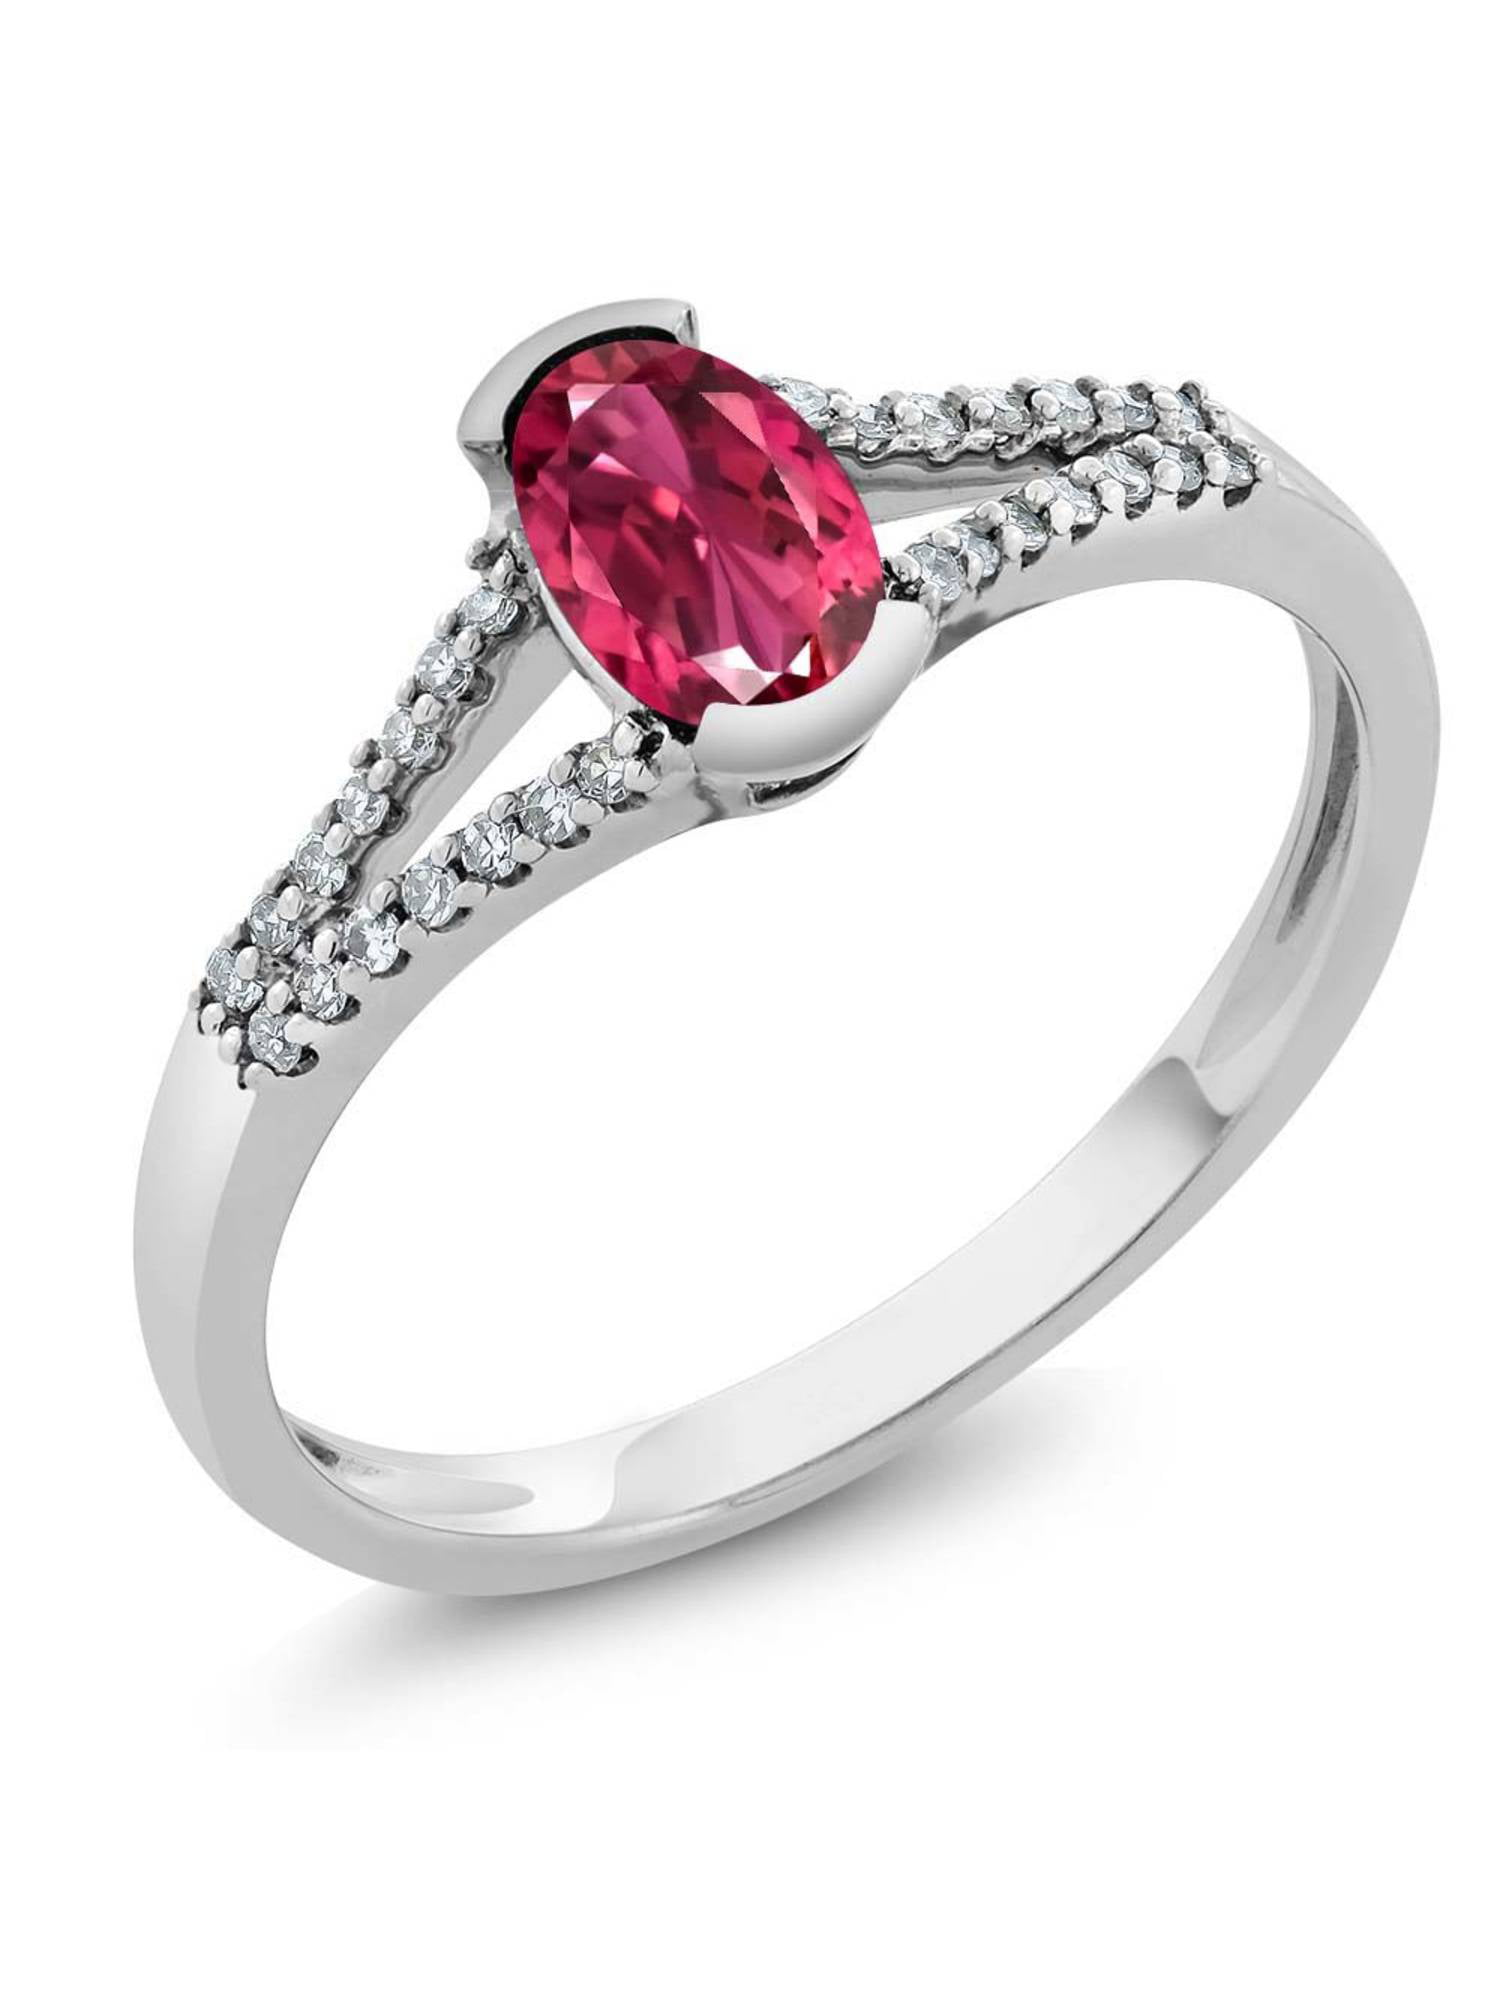 10K White Gold Women's Oval Pink Tourmaline Diamond Ring by